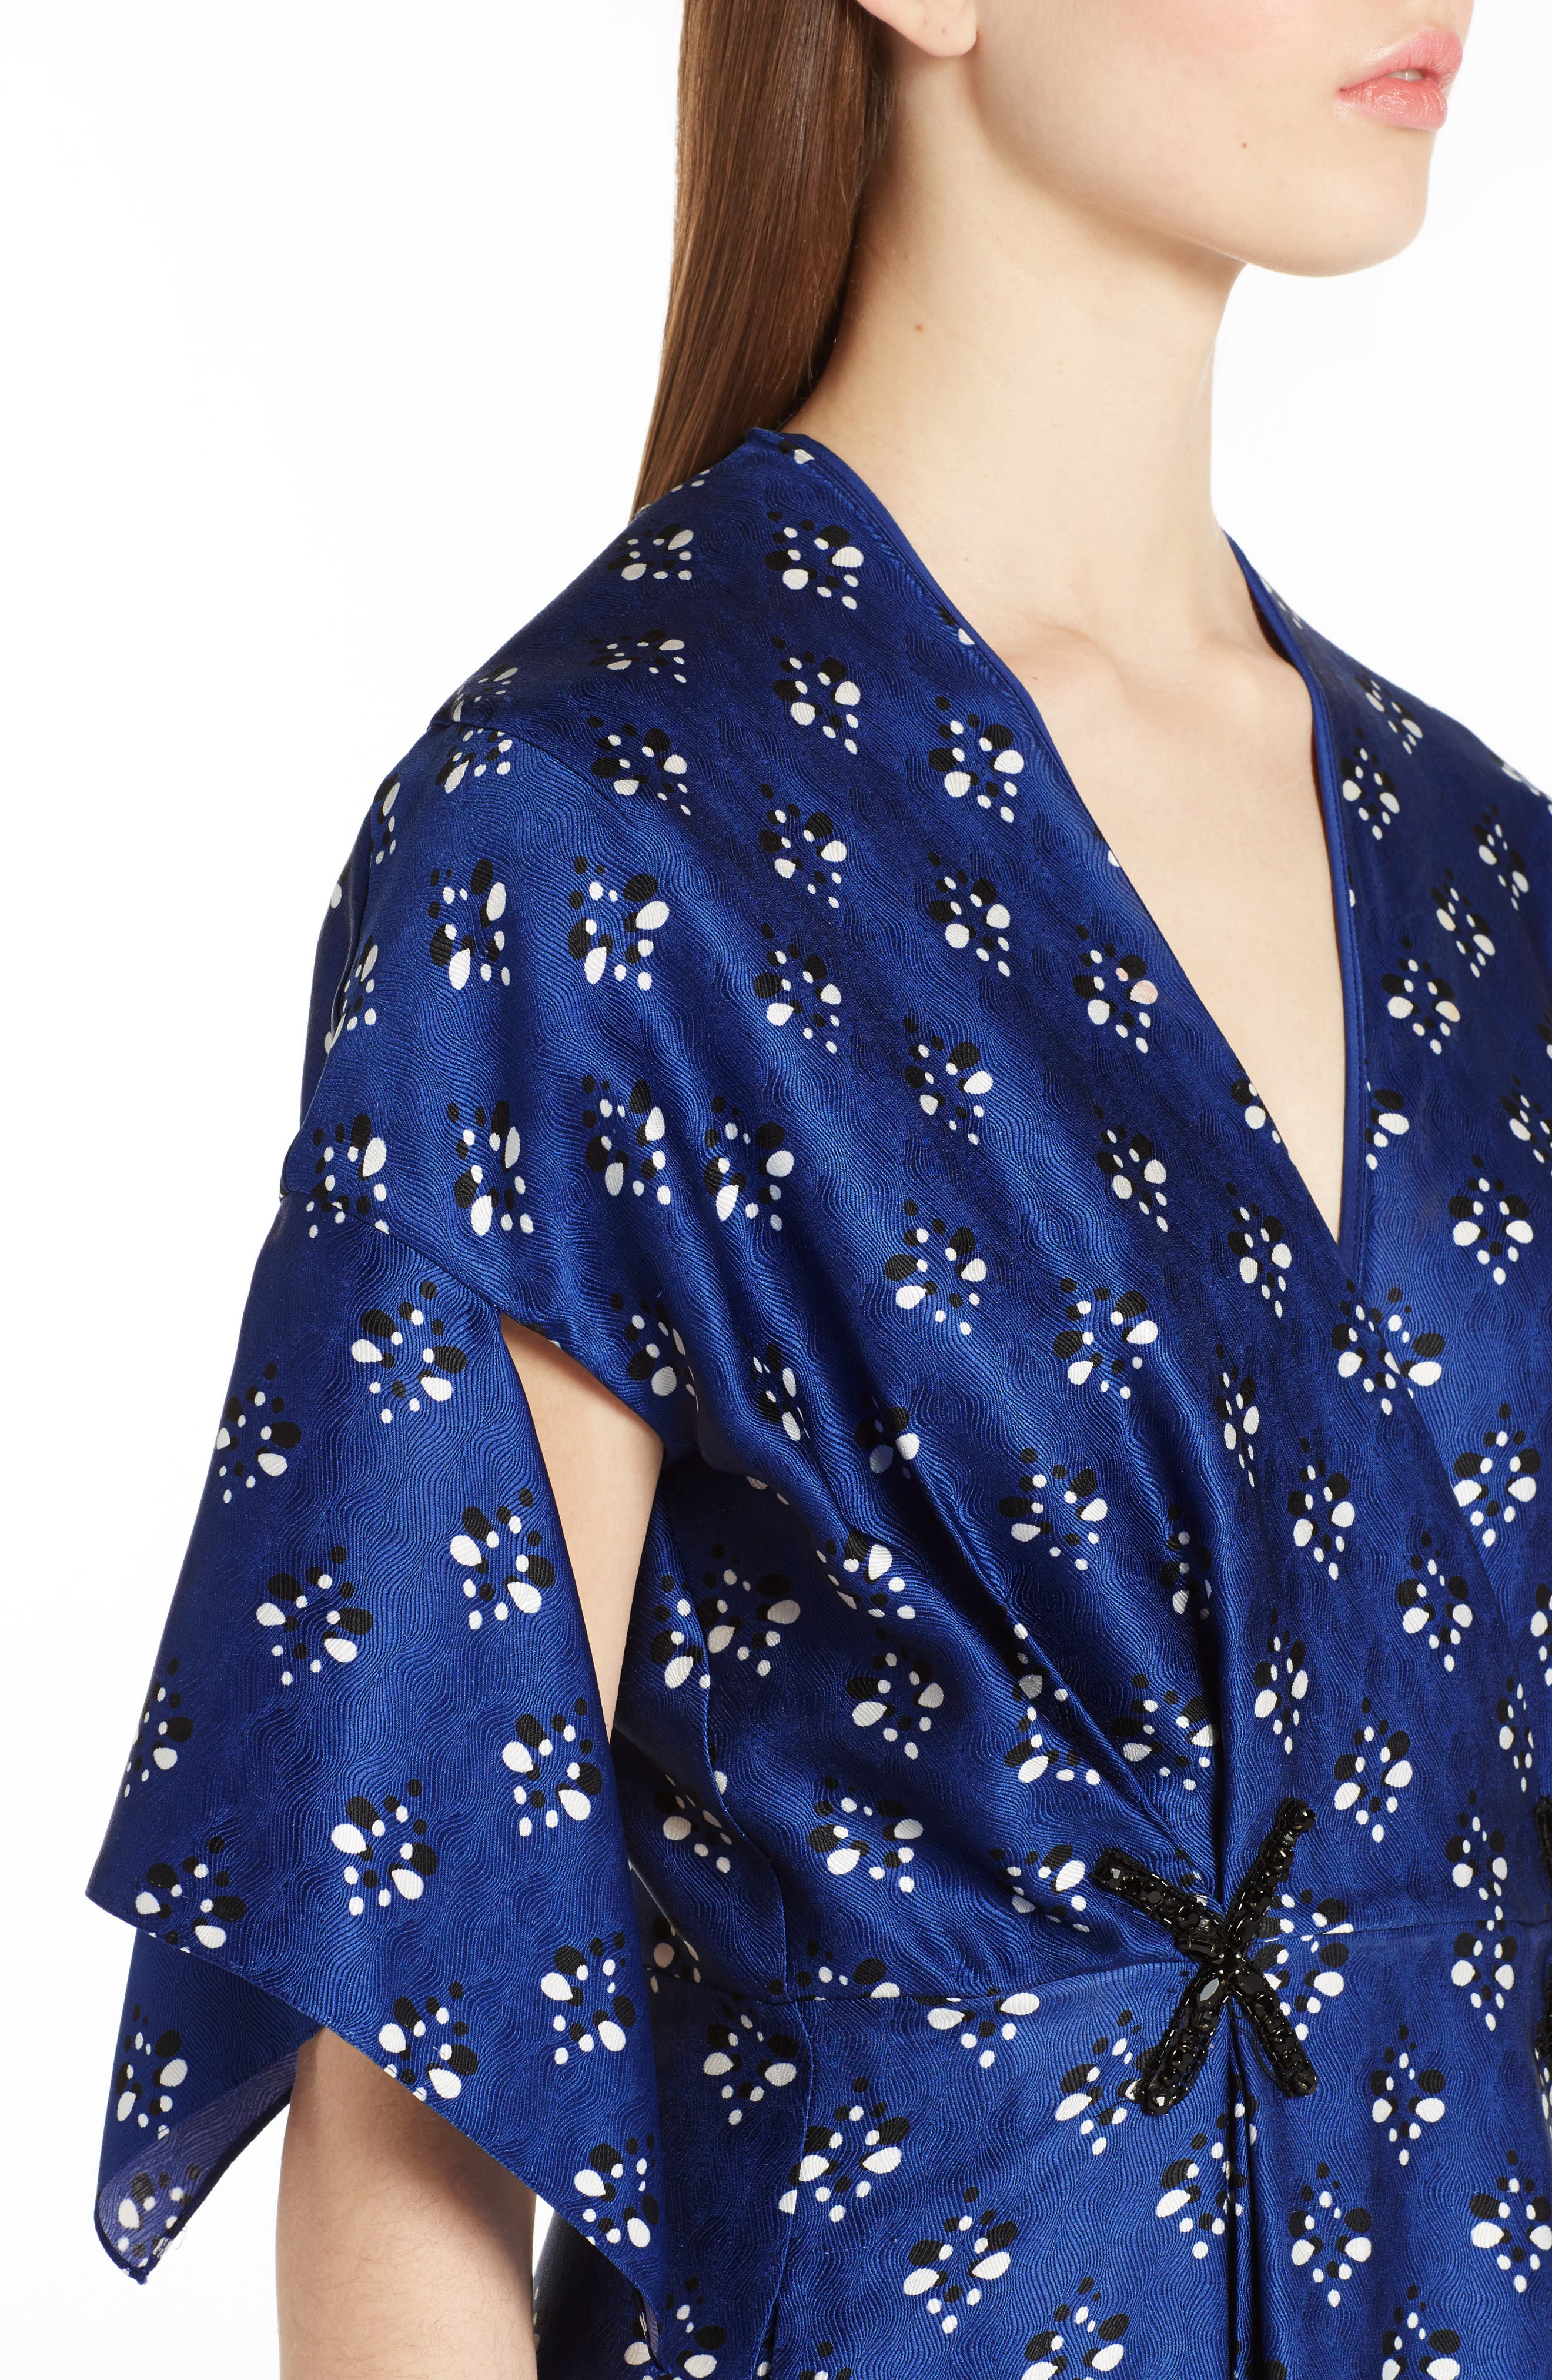 Drops Print Silk Dress,                             Alternate thumbnail 4, color,                             Blue Print